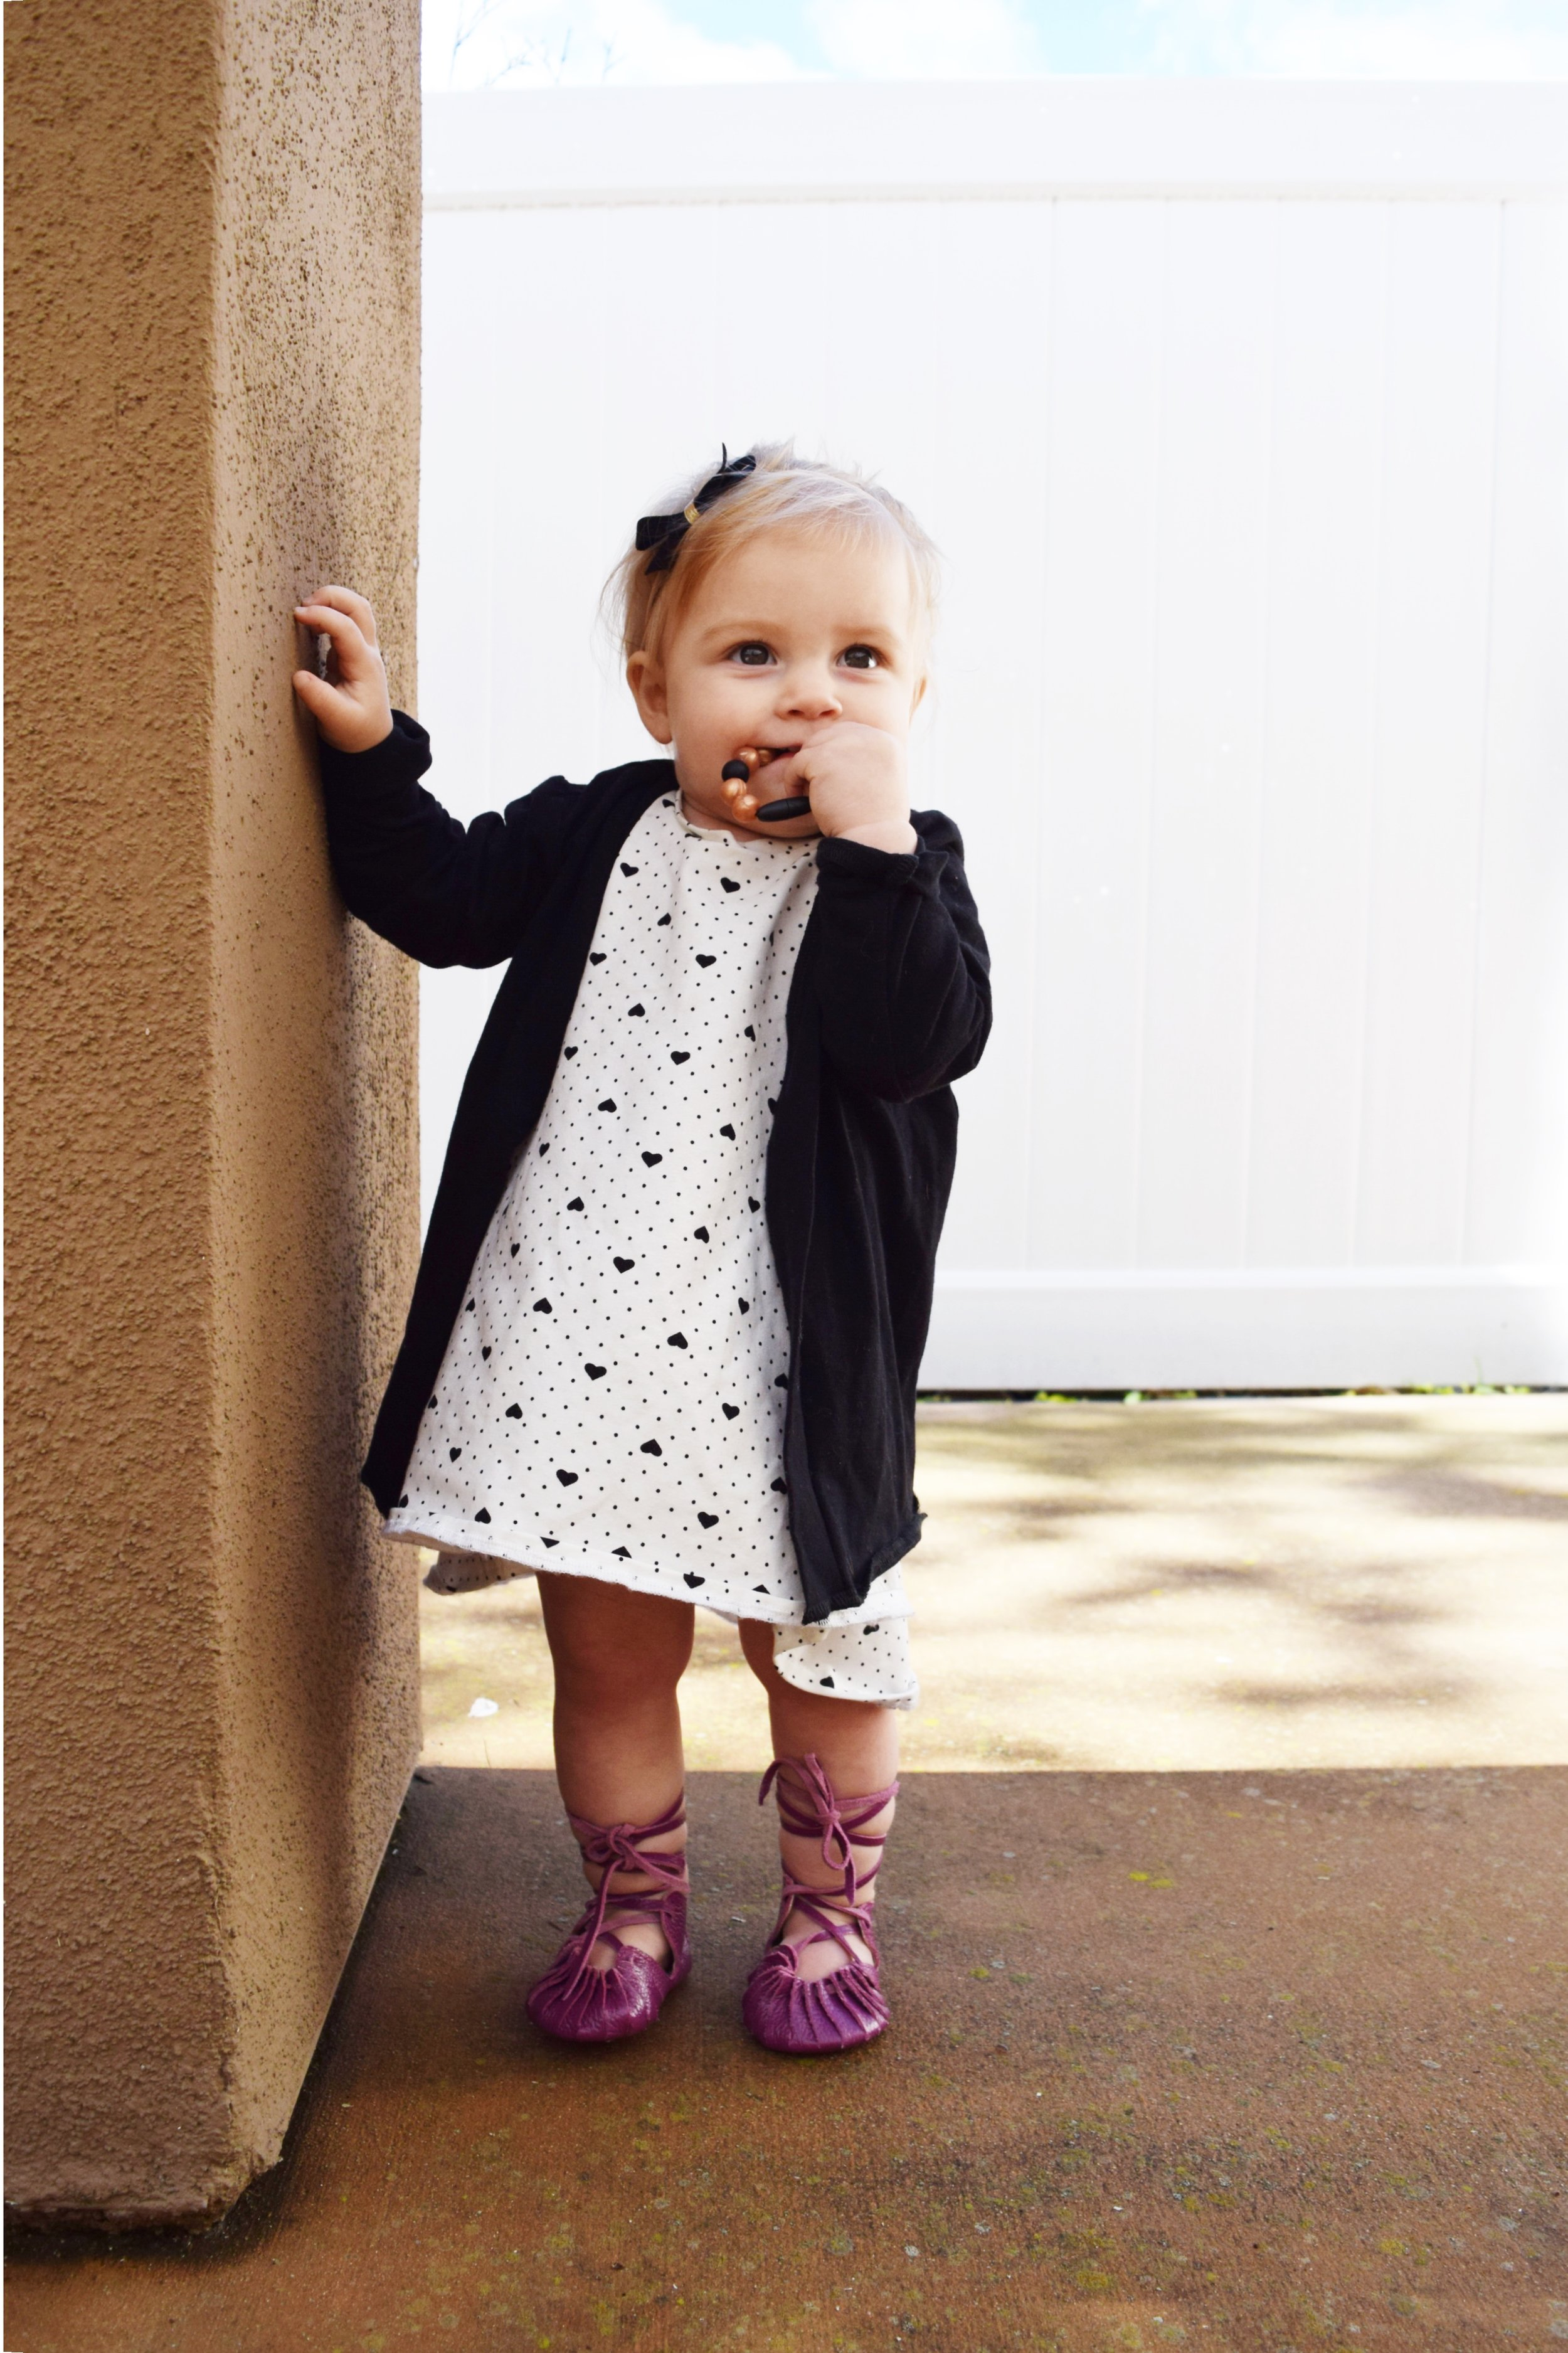 BABY FASHION | Baby Heart Dress, Baby Lace Up Ballet Flats, Black Baby Cardigan